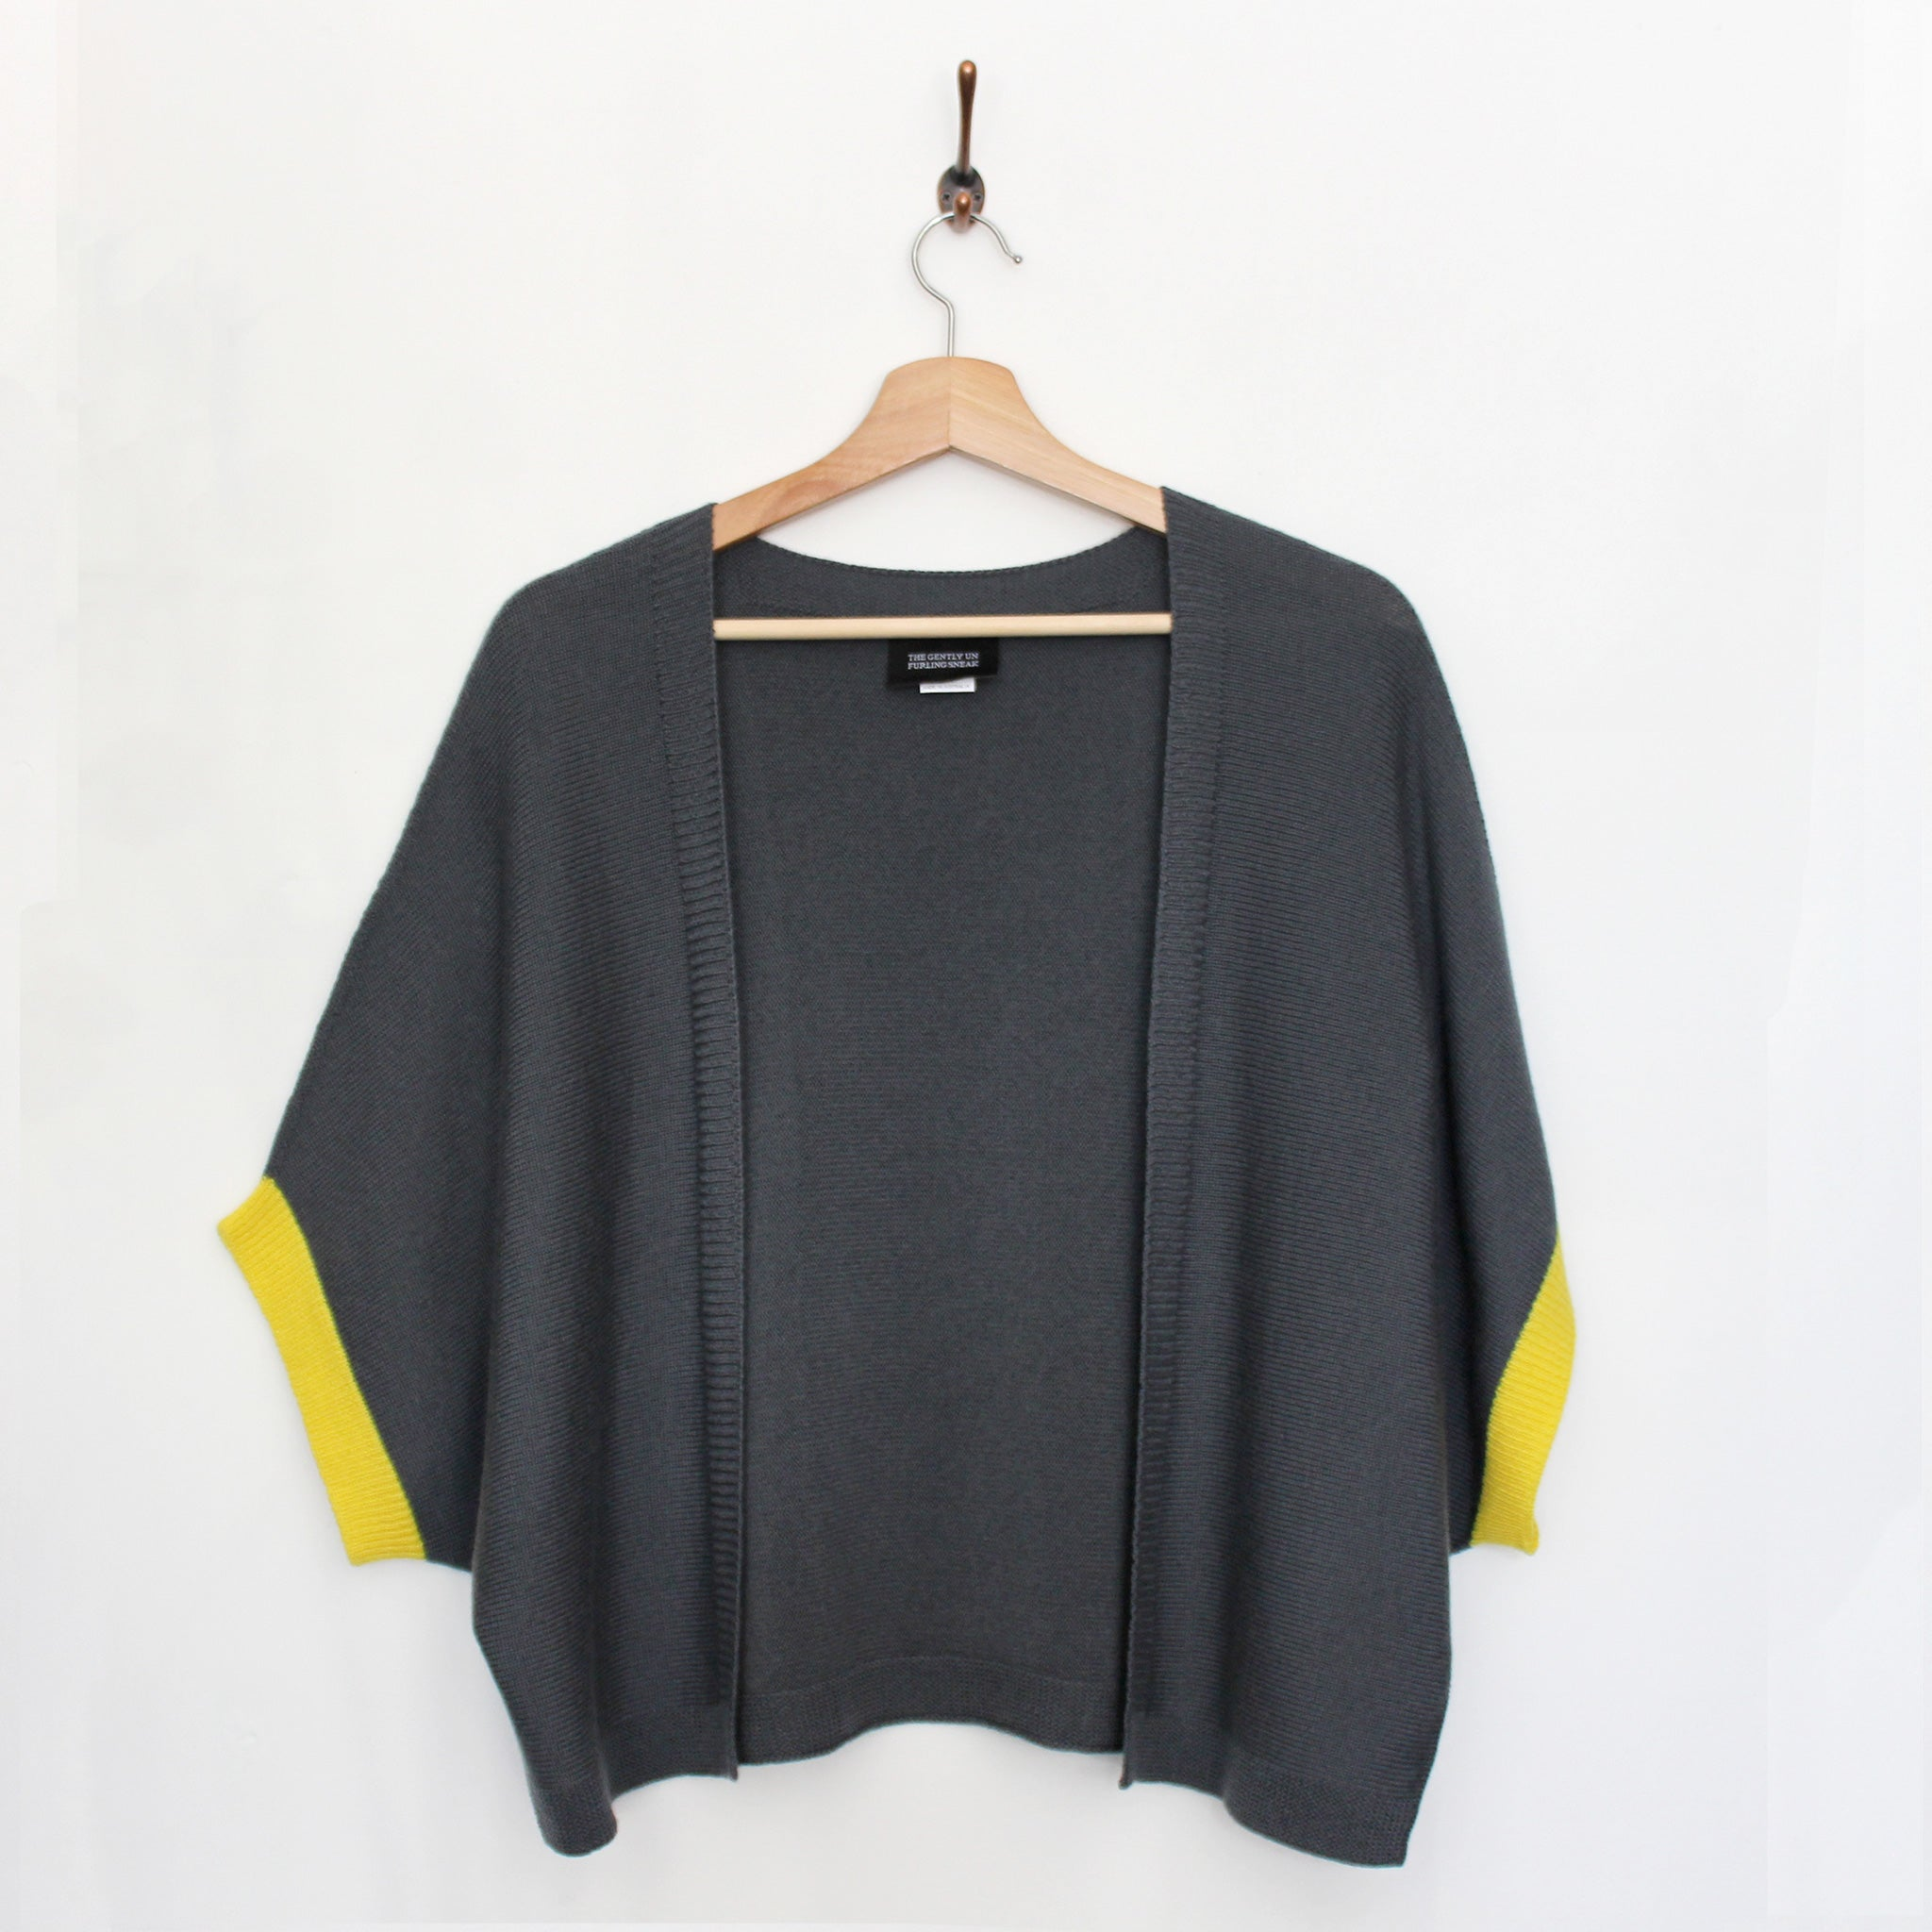 Shrug : Charcoal Yellow